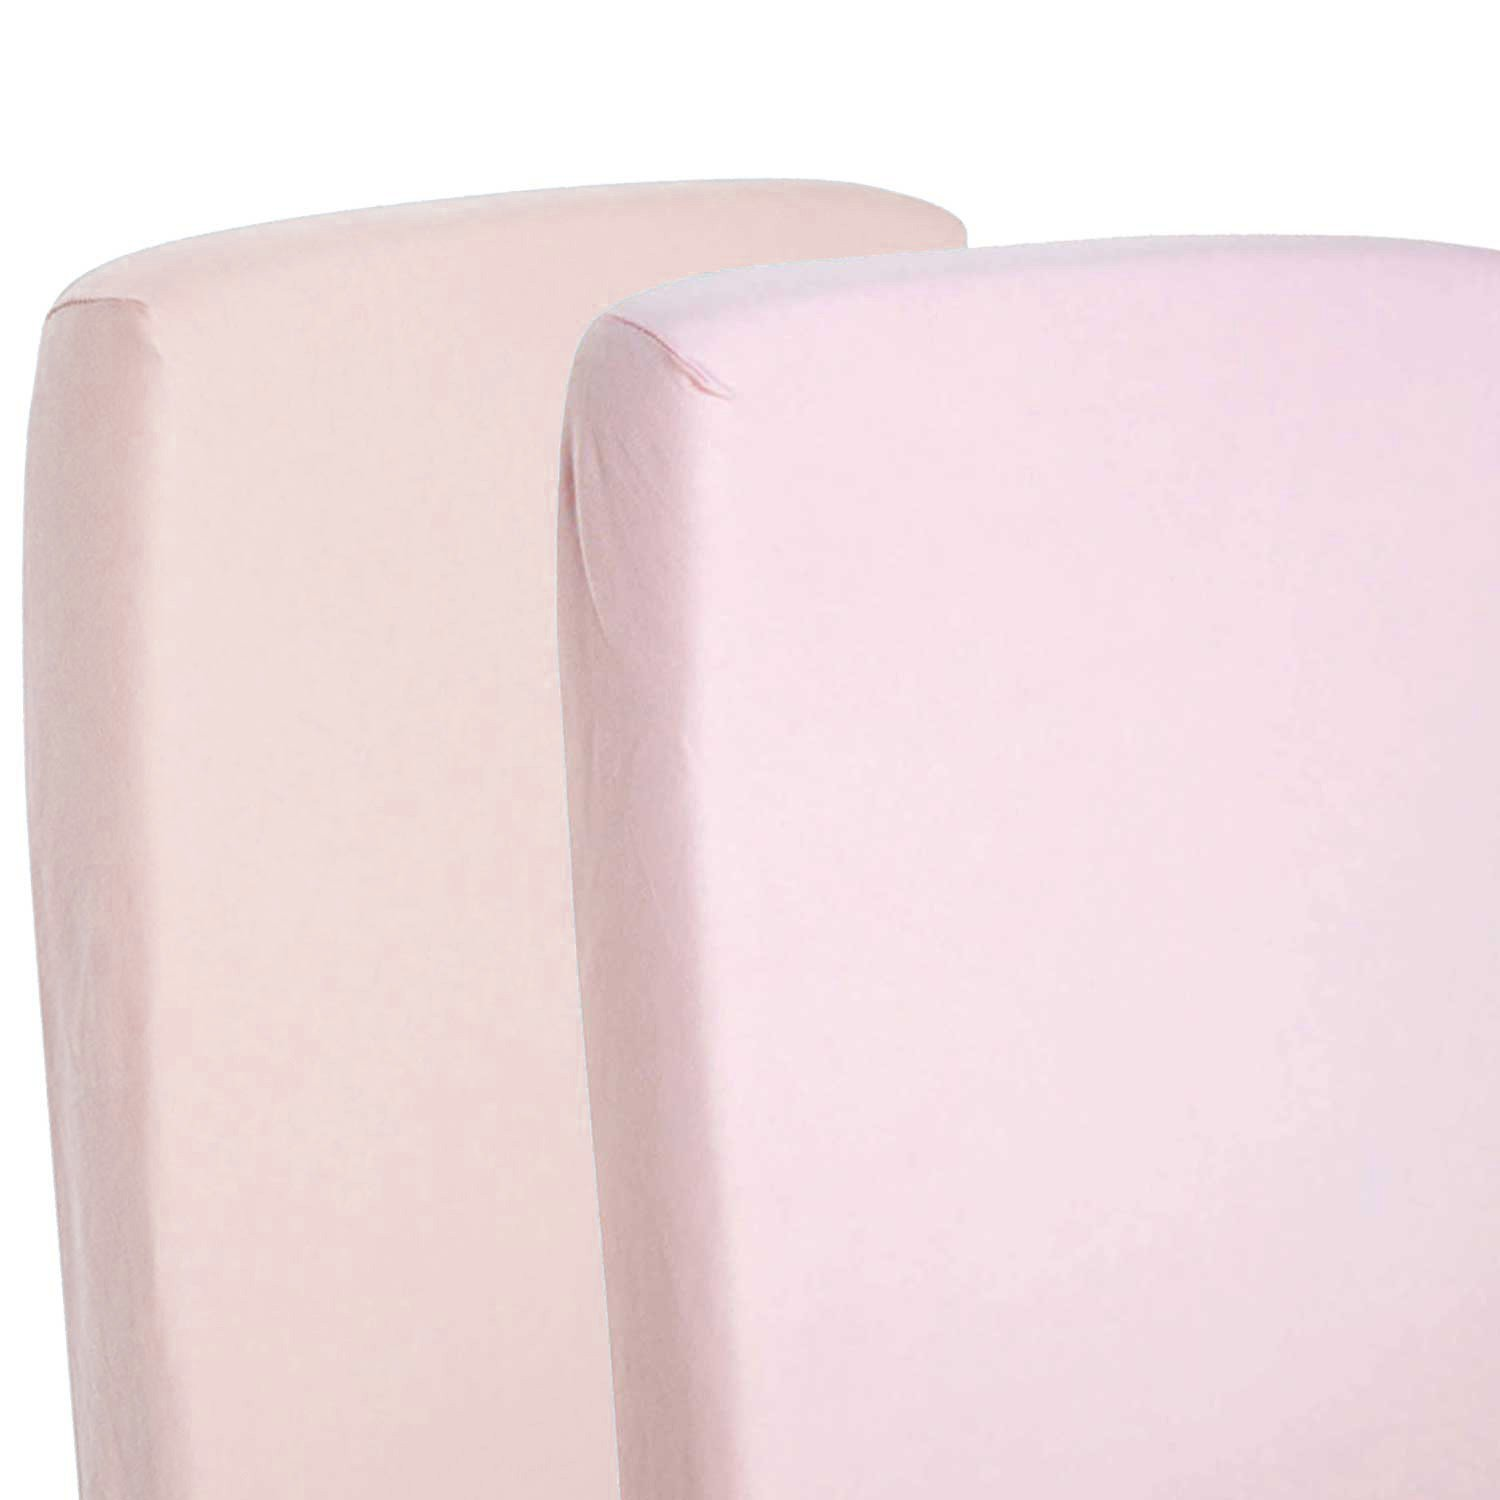 2x Fitted Sheets Compatible With Snuzpod Bedside Crib 100% Cotton - Pink-By For-Your-Little-One